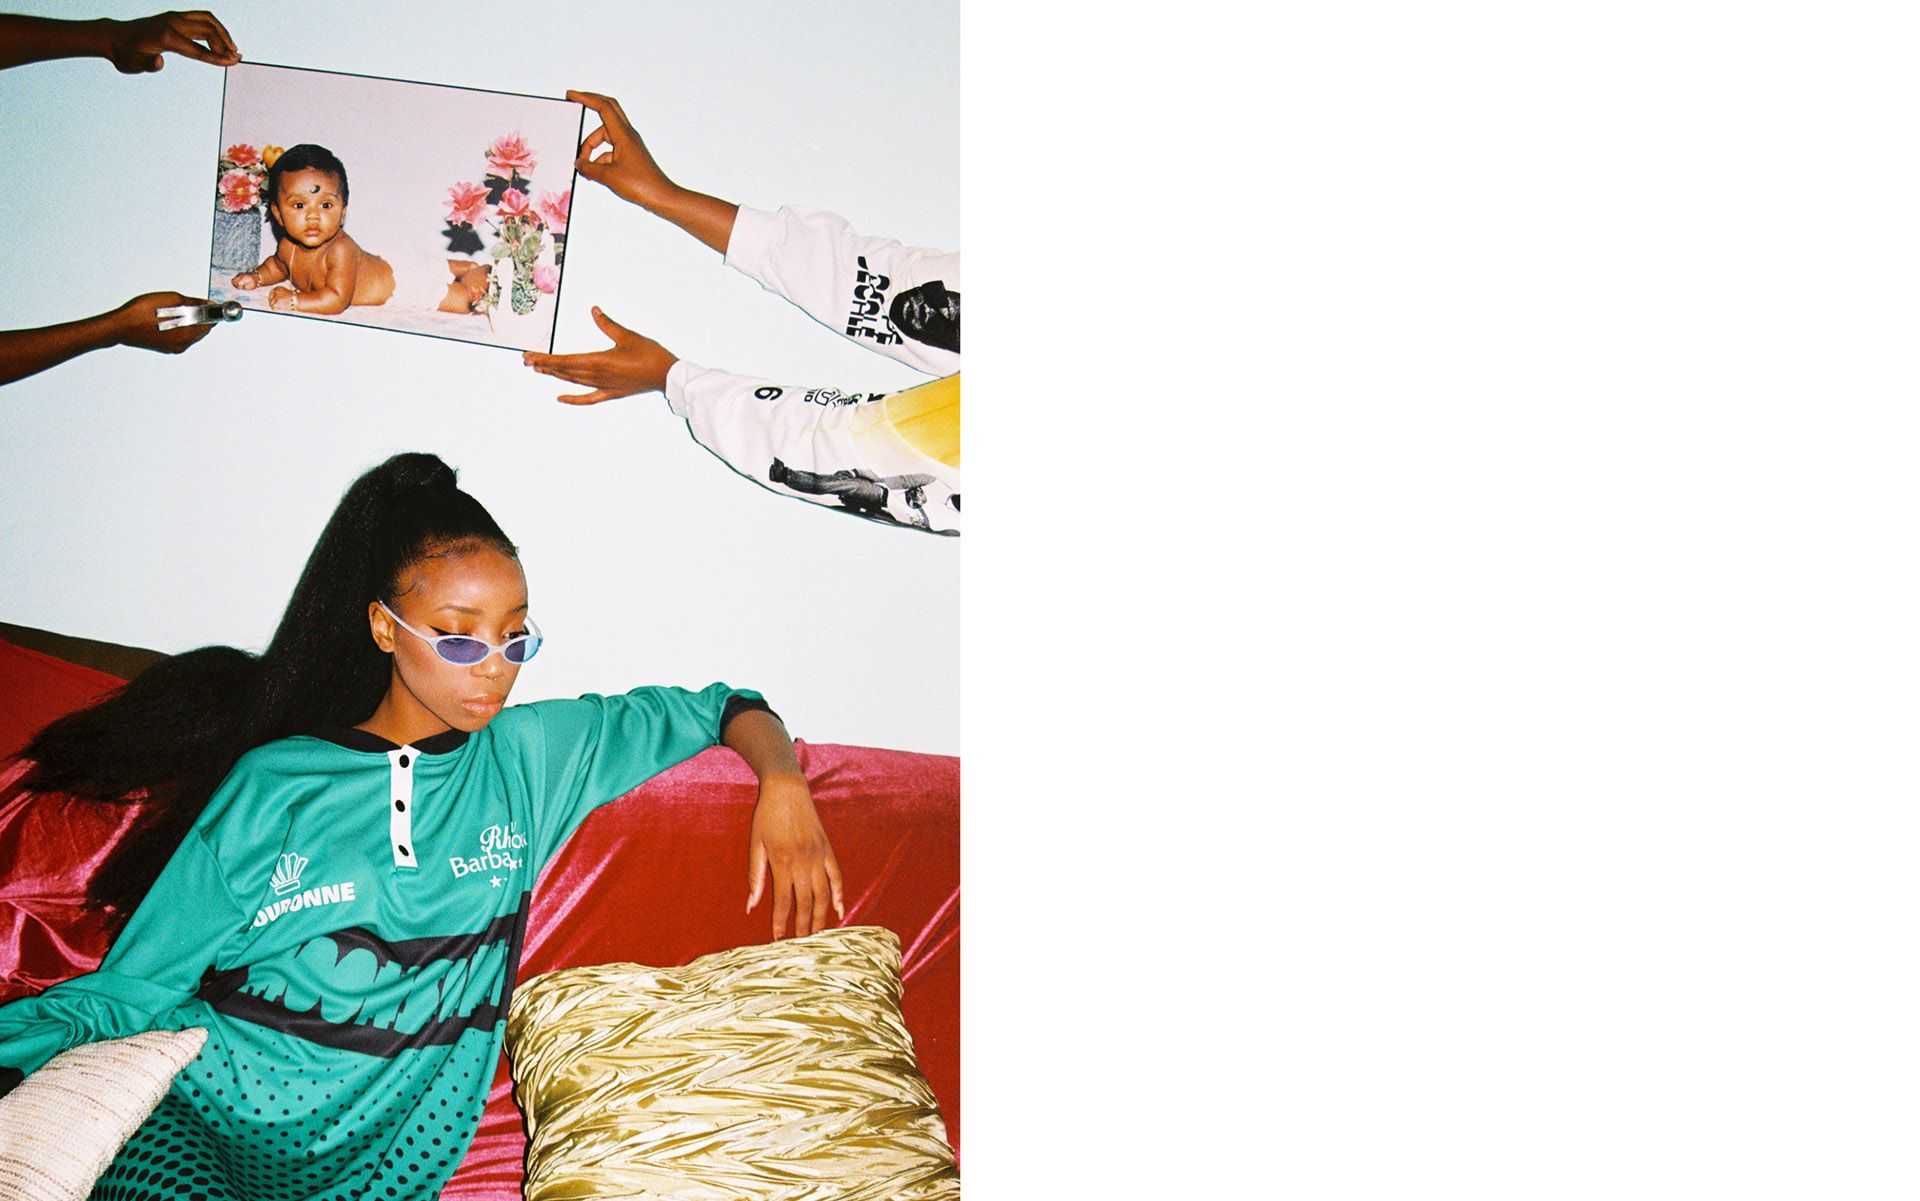 black girl model by Oumayma B Tanfous for Moonshine international sapologie with Nataal